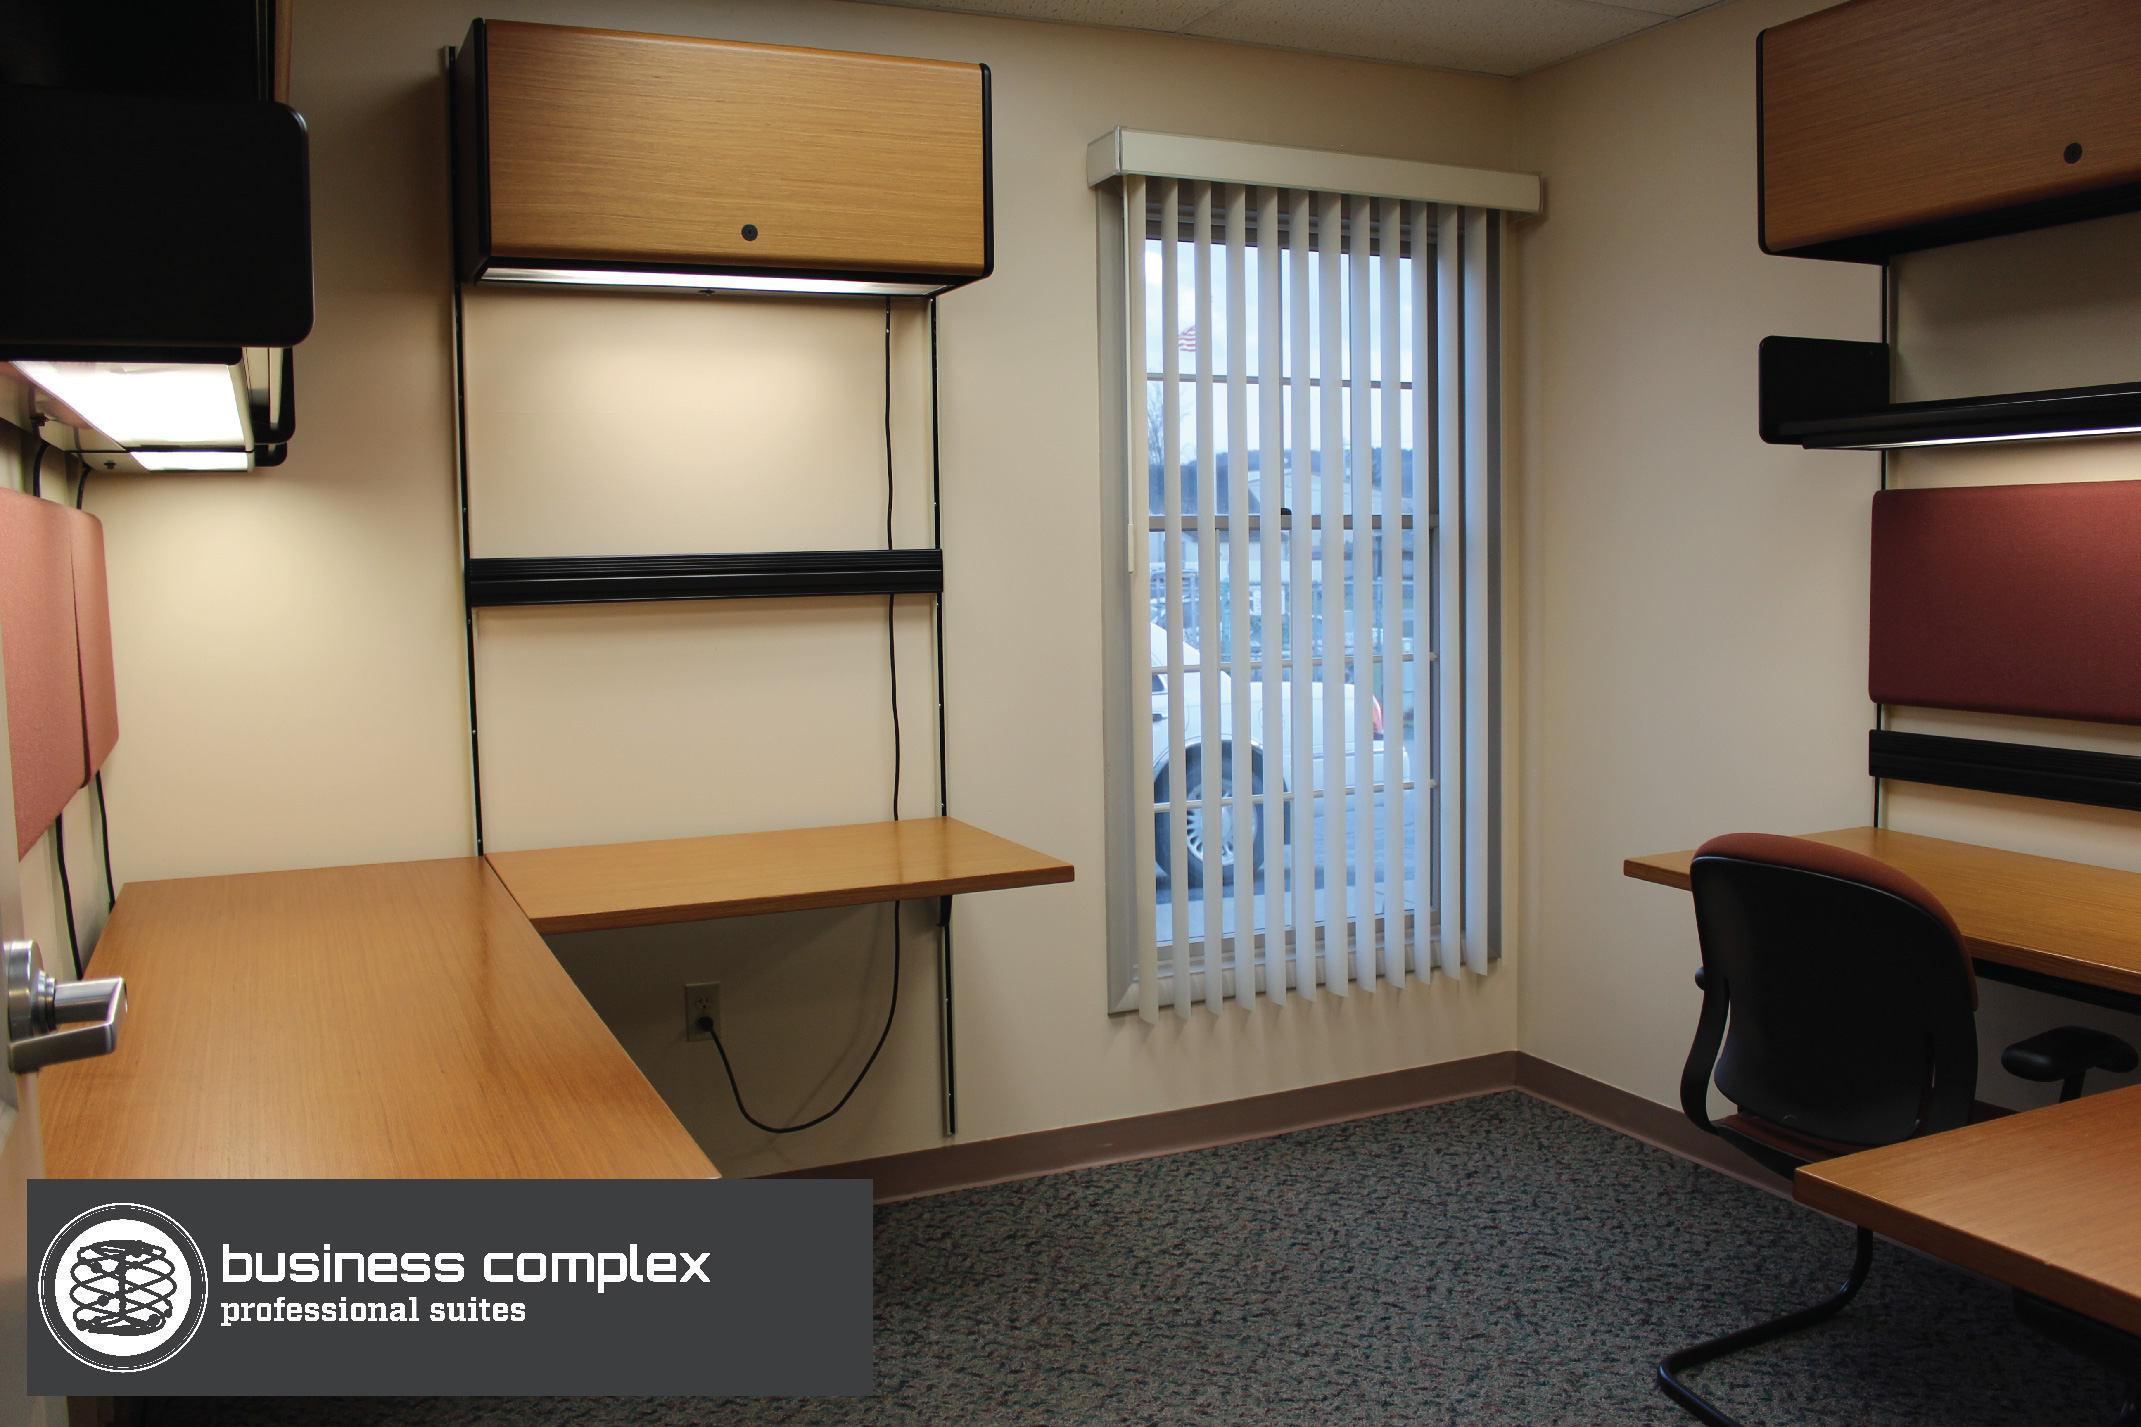 professional suites for rent suite 2.jpg